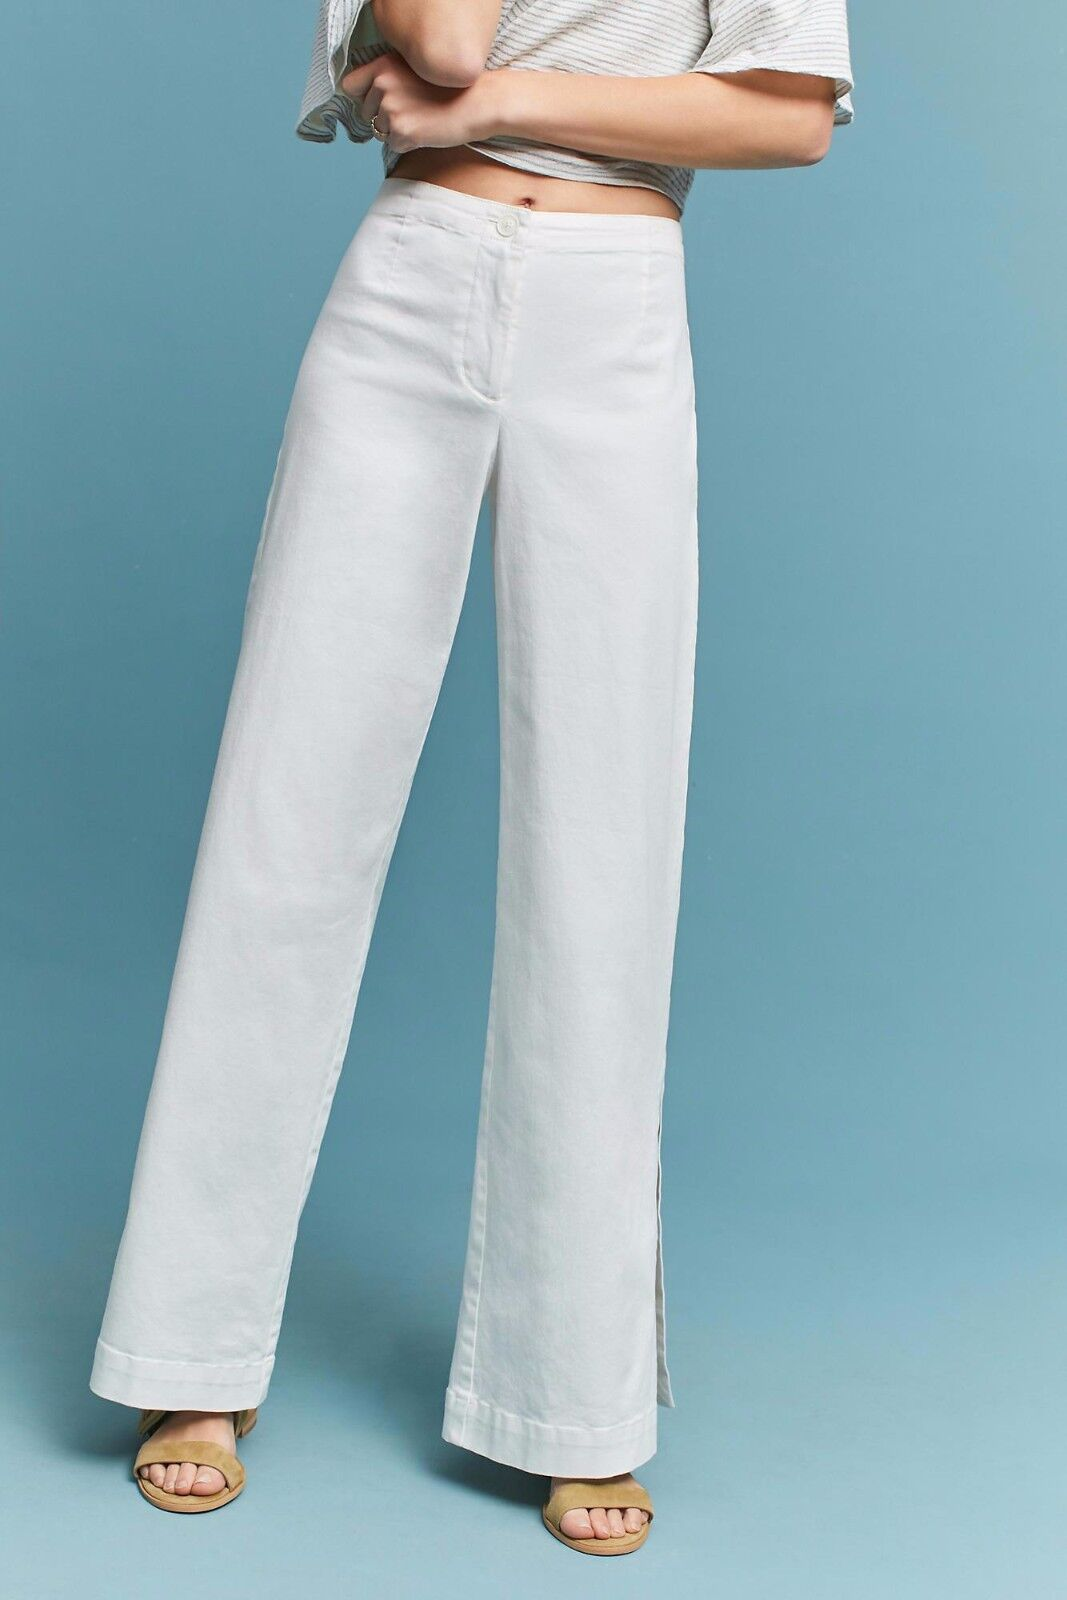 NWT PLENTY by TRACY REESE SIDE-SLIT Weiß TROUSER PANTS 4, 6